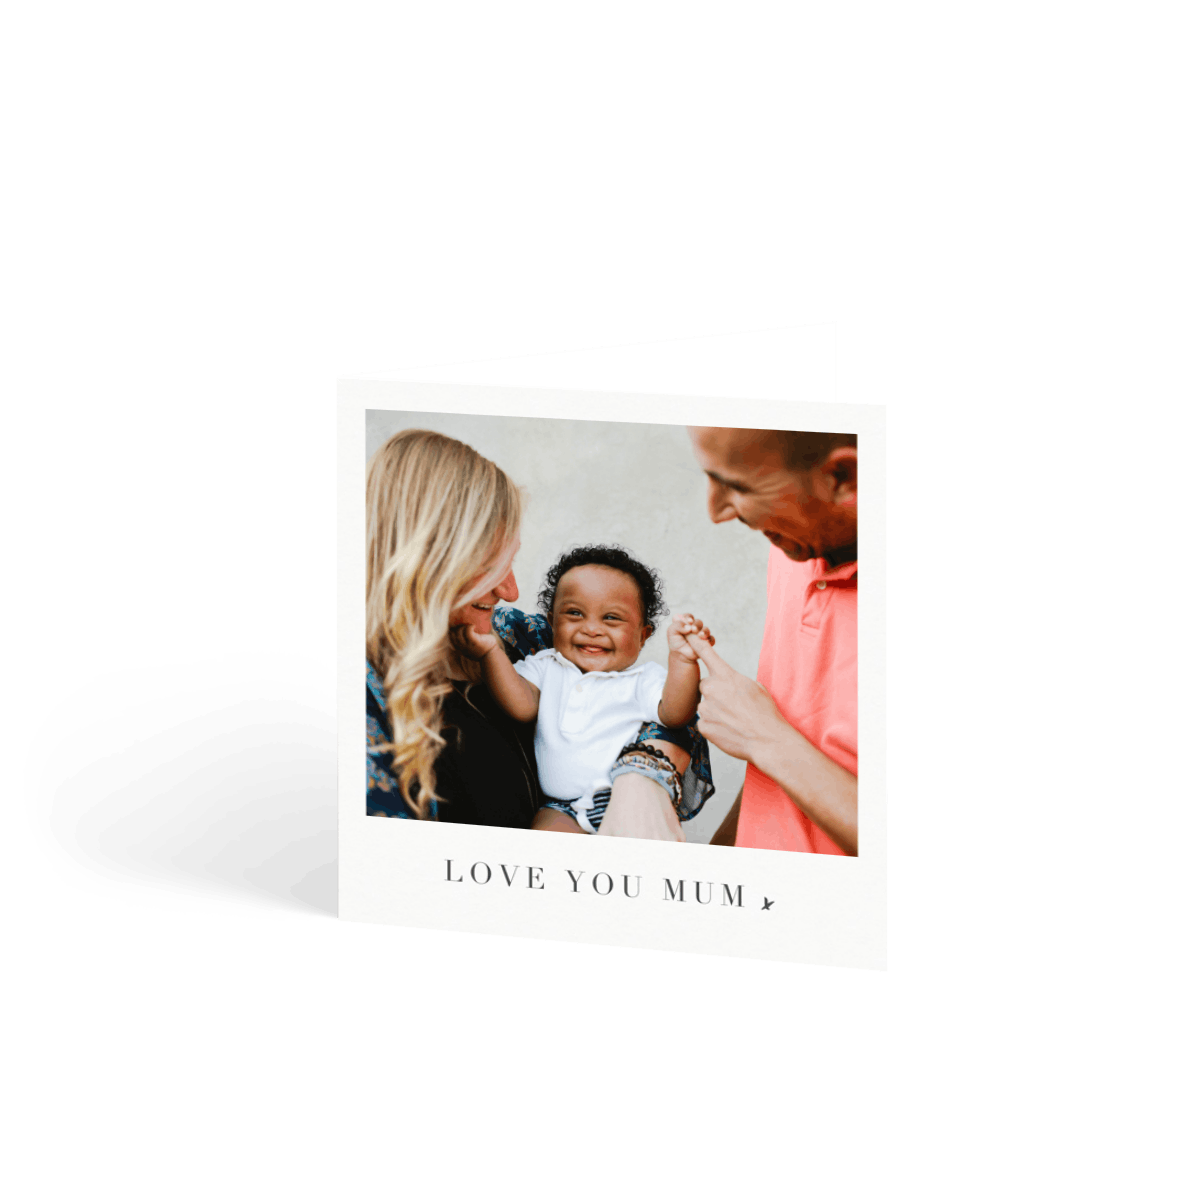 Https%3a%2f%2fwww.papier.com%2fproduct image%2f4431%2f16%2fmother s day photo card 1160 front 1517917143.png?ixlib=rb 1.1